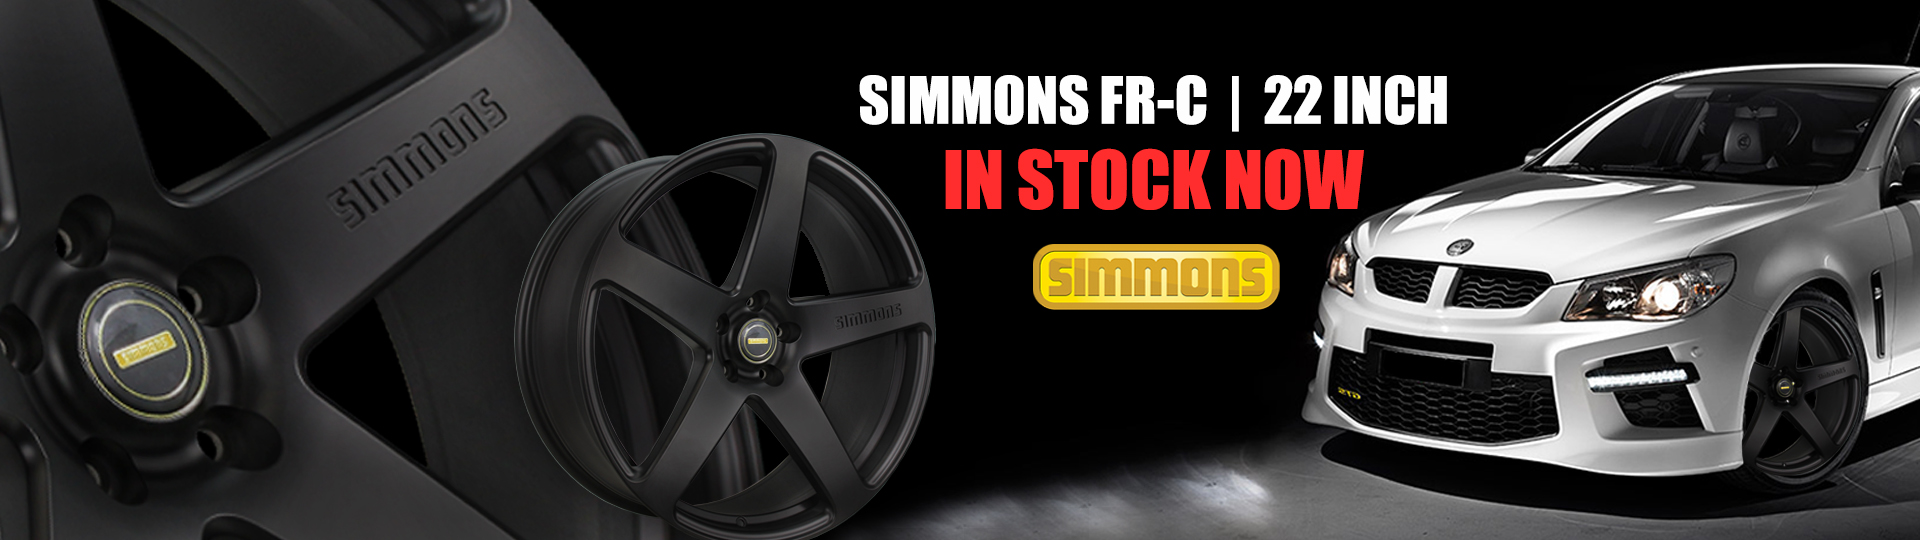 simmons fr-c - sim website.jpg